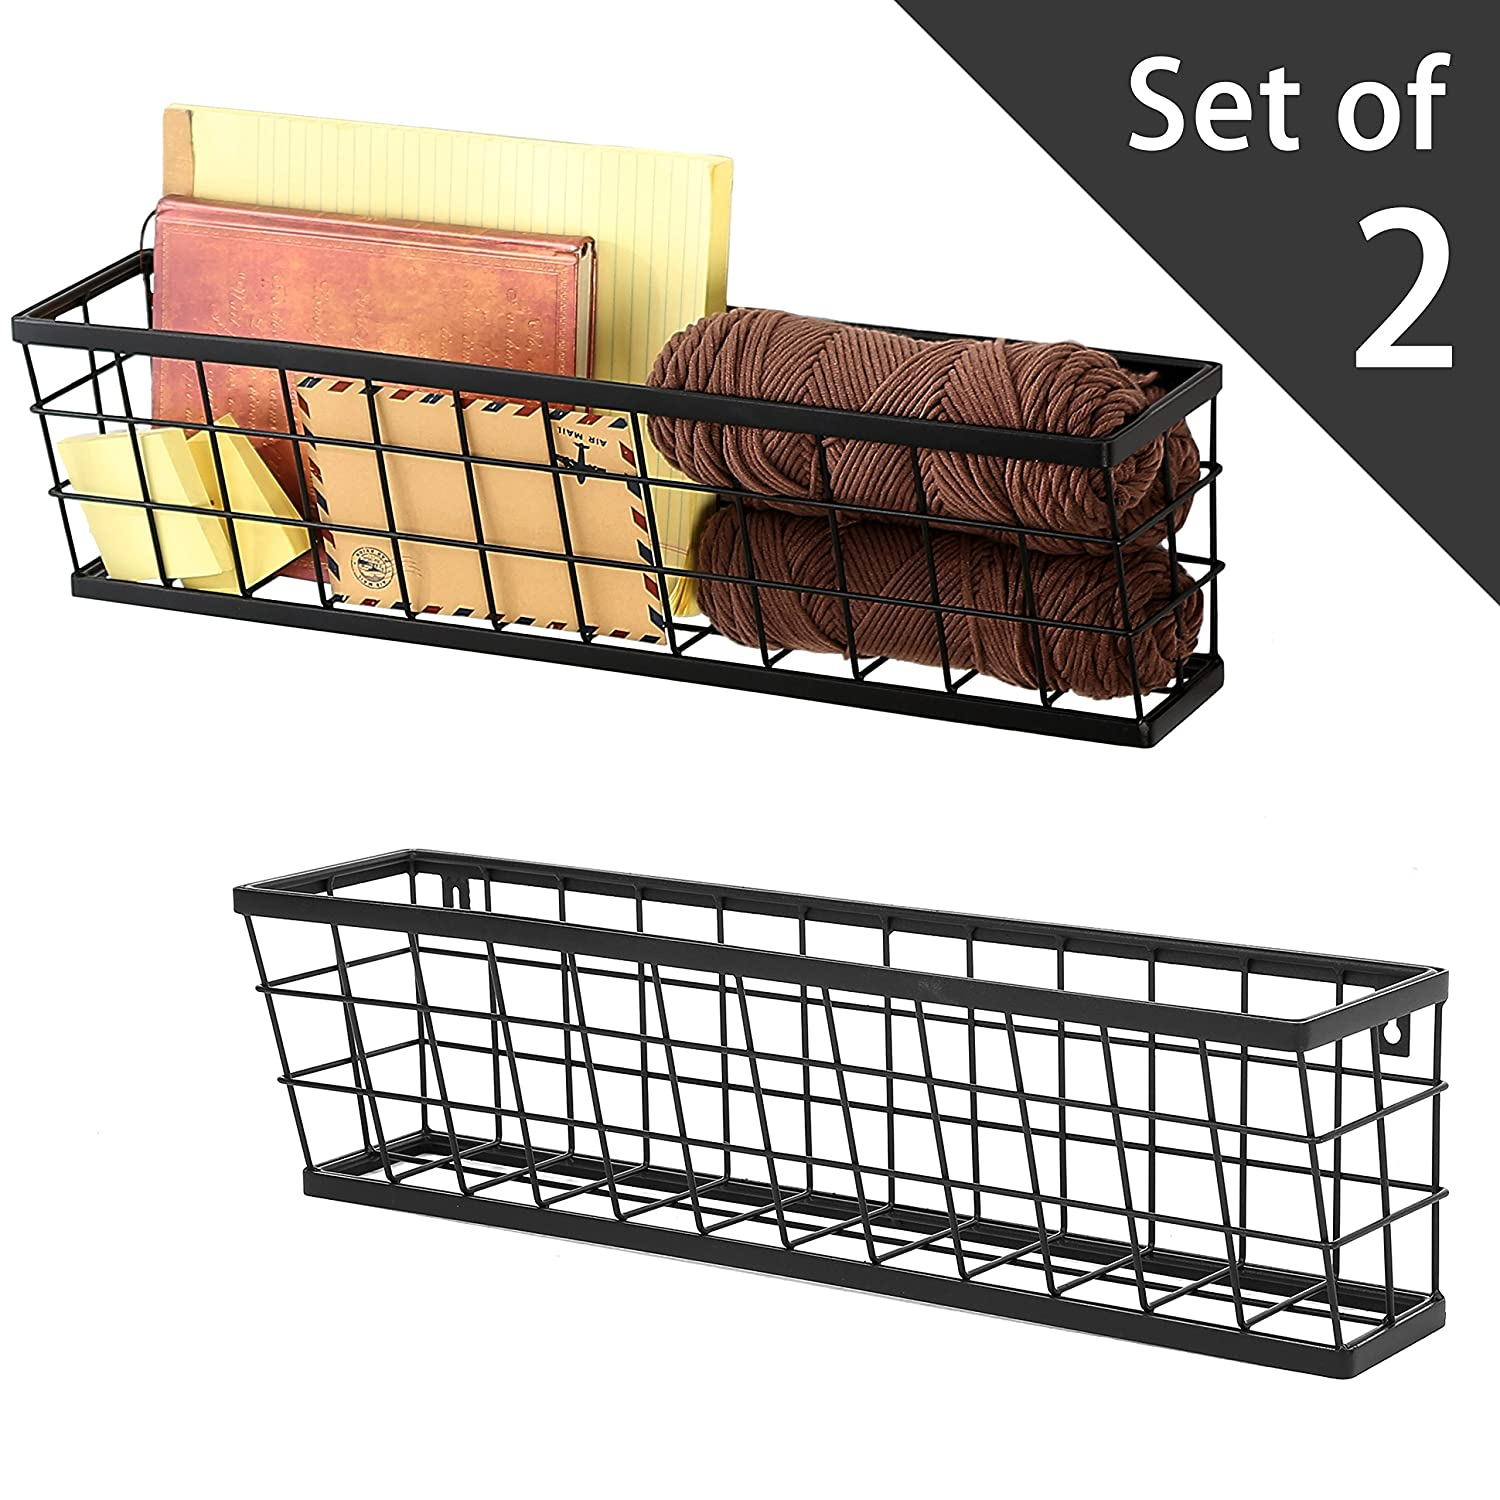 Modern Rectangular Wall Mounted Metal Wire Storage Baskets, Set of 2, Black MyGift SPOMHNK3891